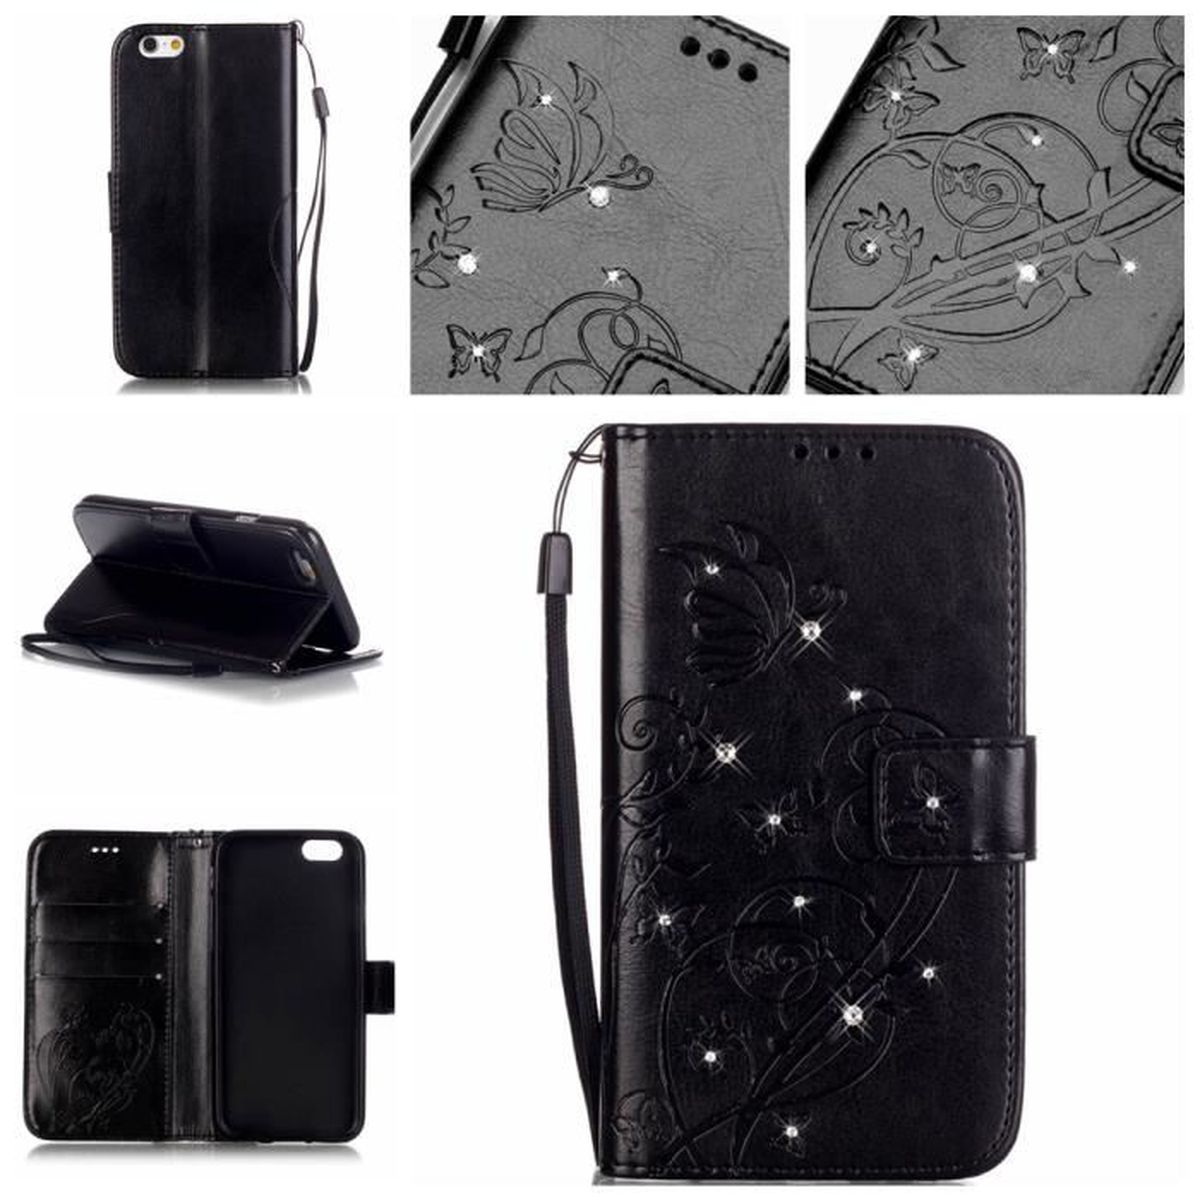 Tui housse diamant luxe coque portefeuille cuir iphone 6s for Housse iphone 6 luxe